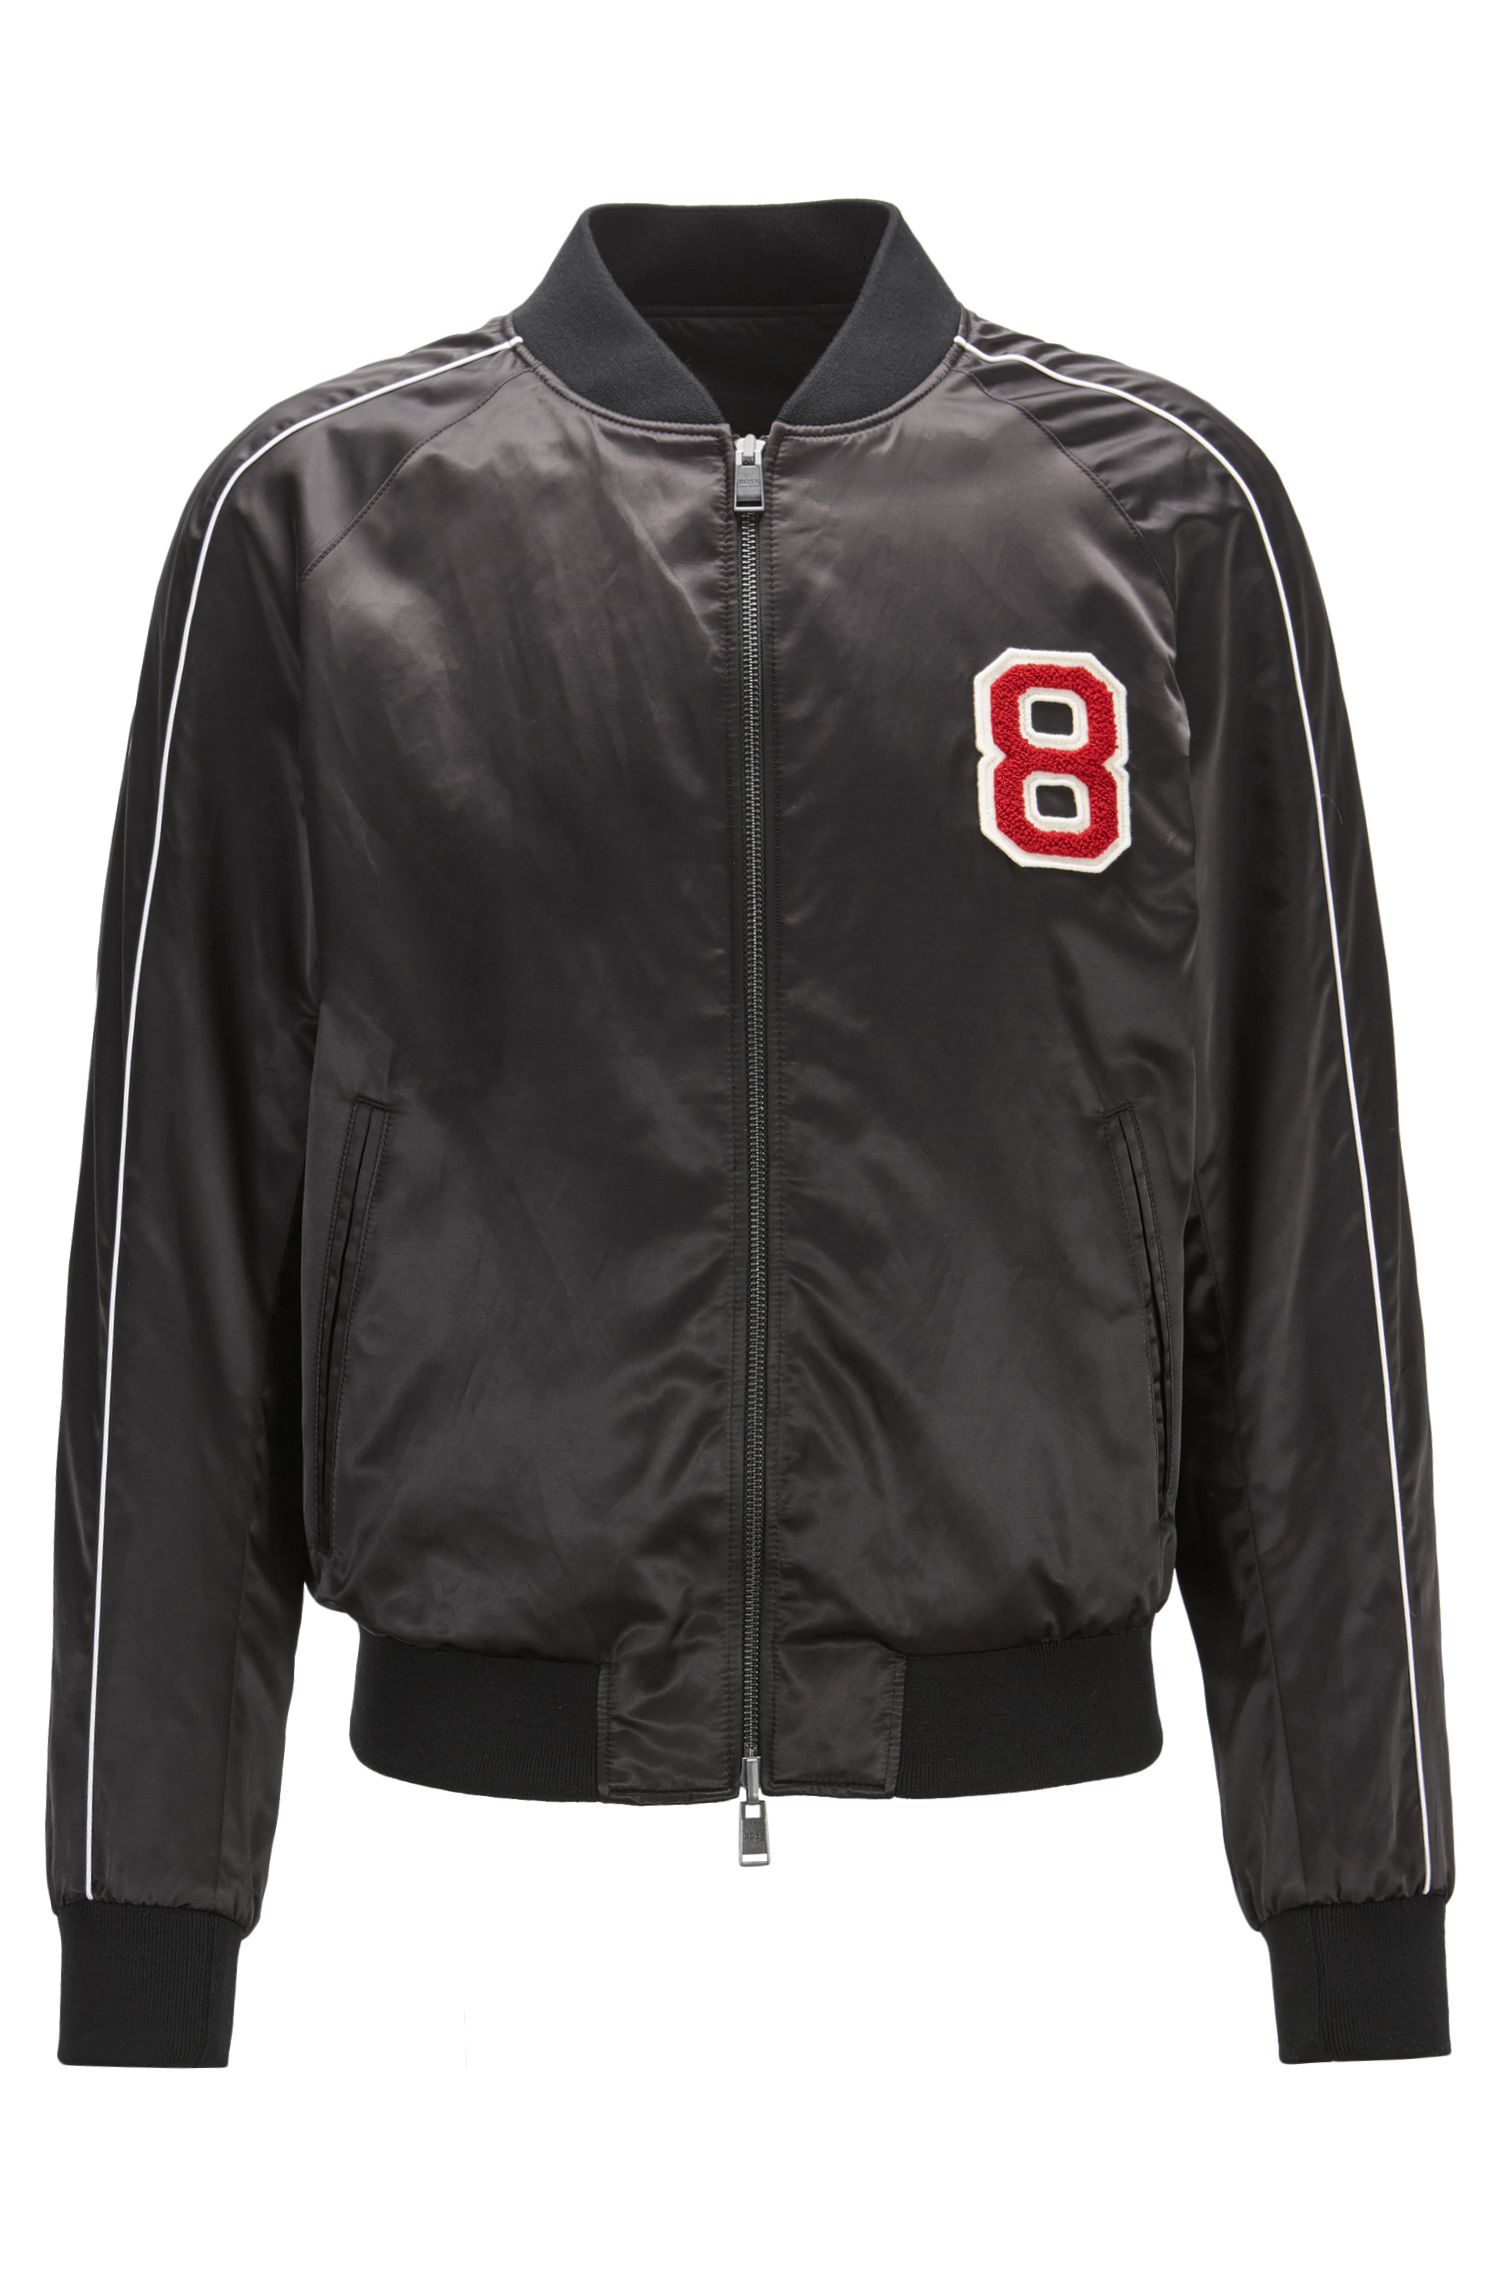 Reversible satin bomber jacket with embroidered race car patch